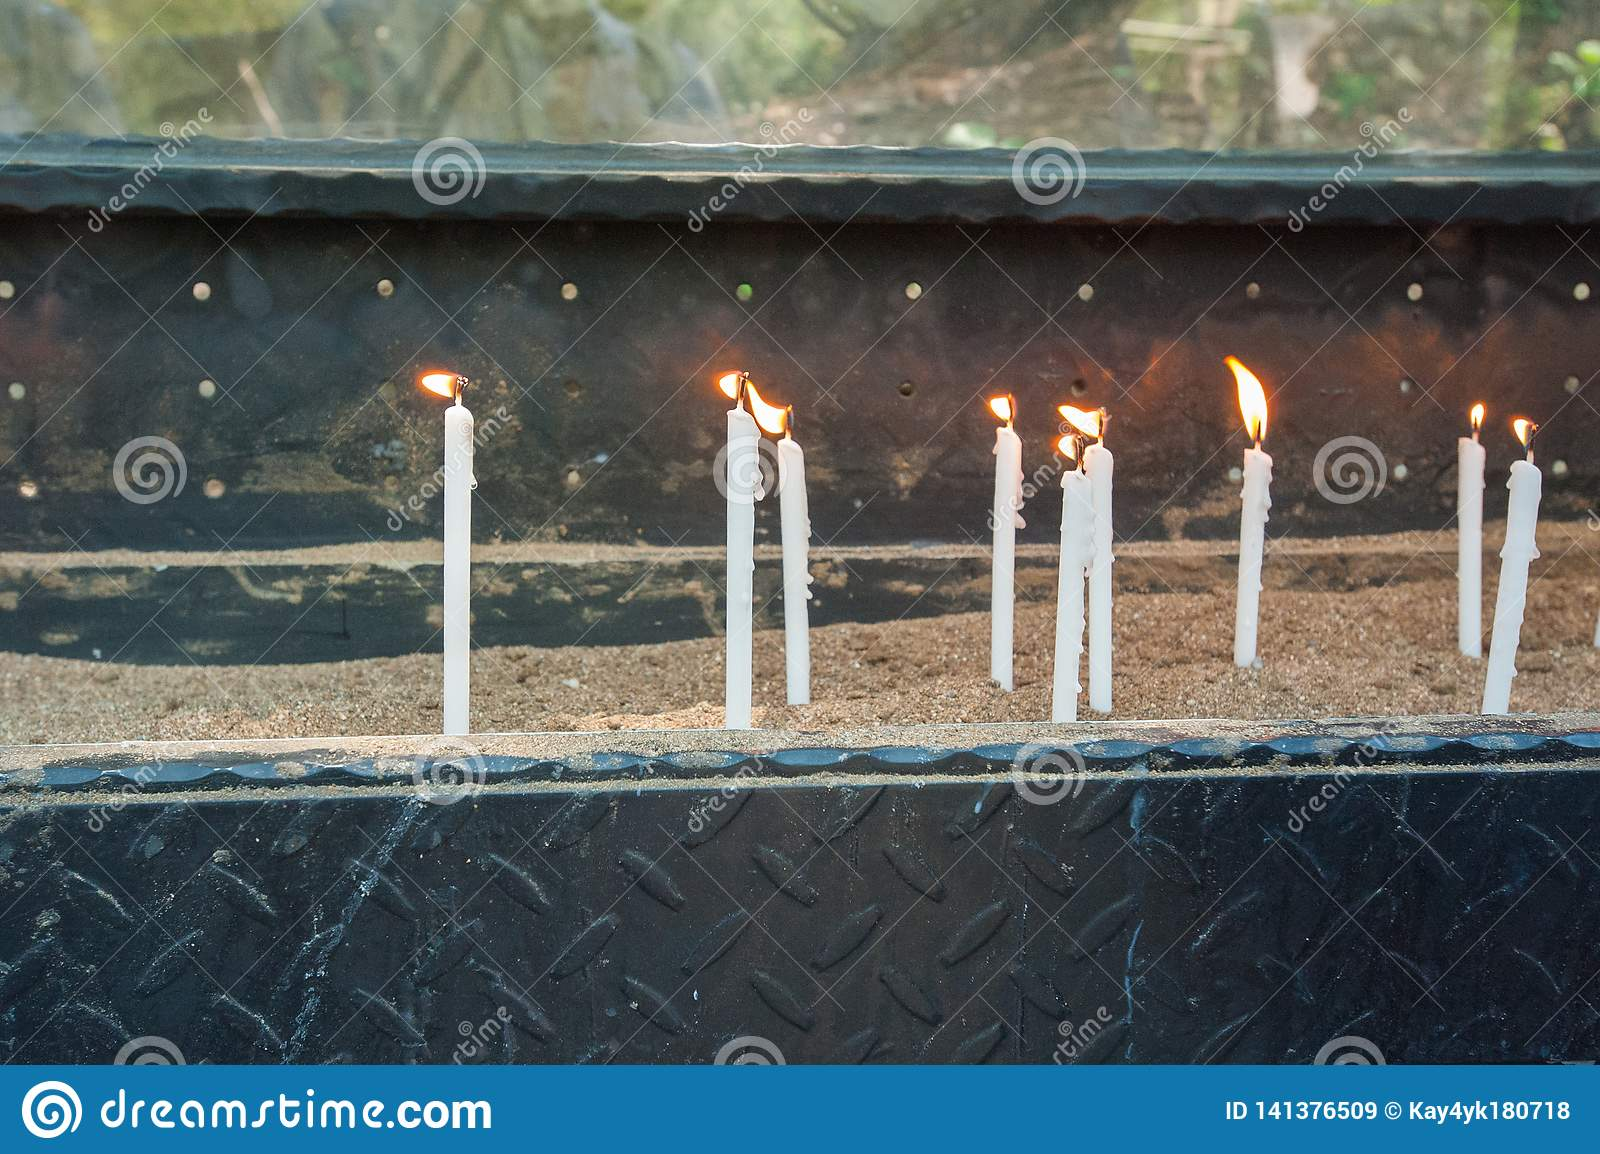 White burning candles stand on the sand